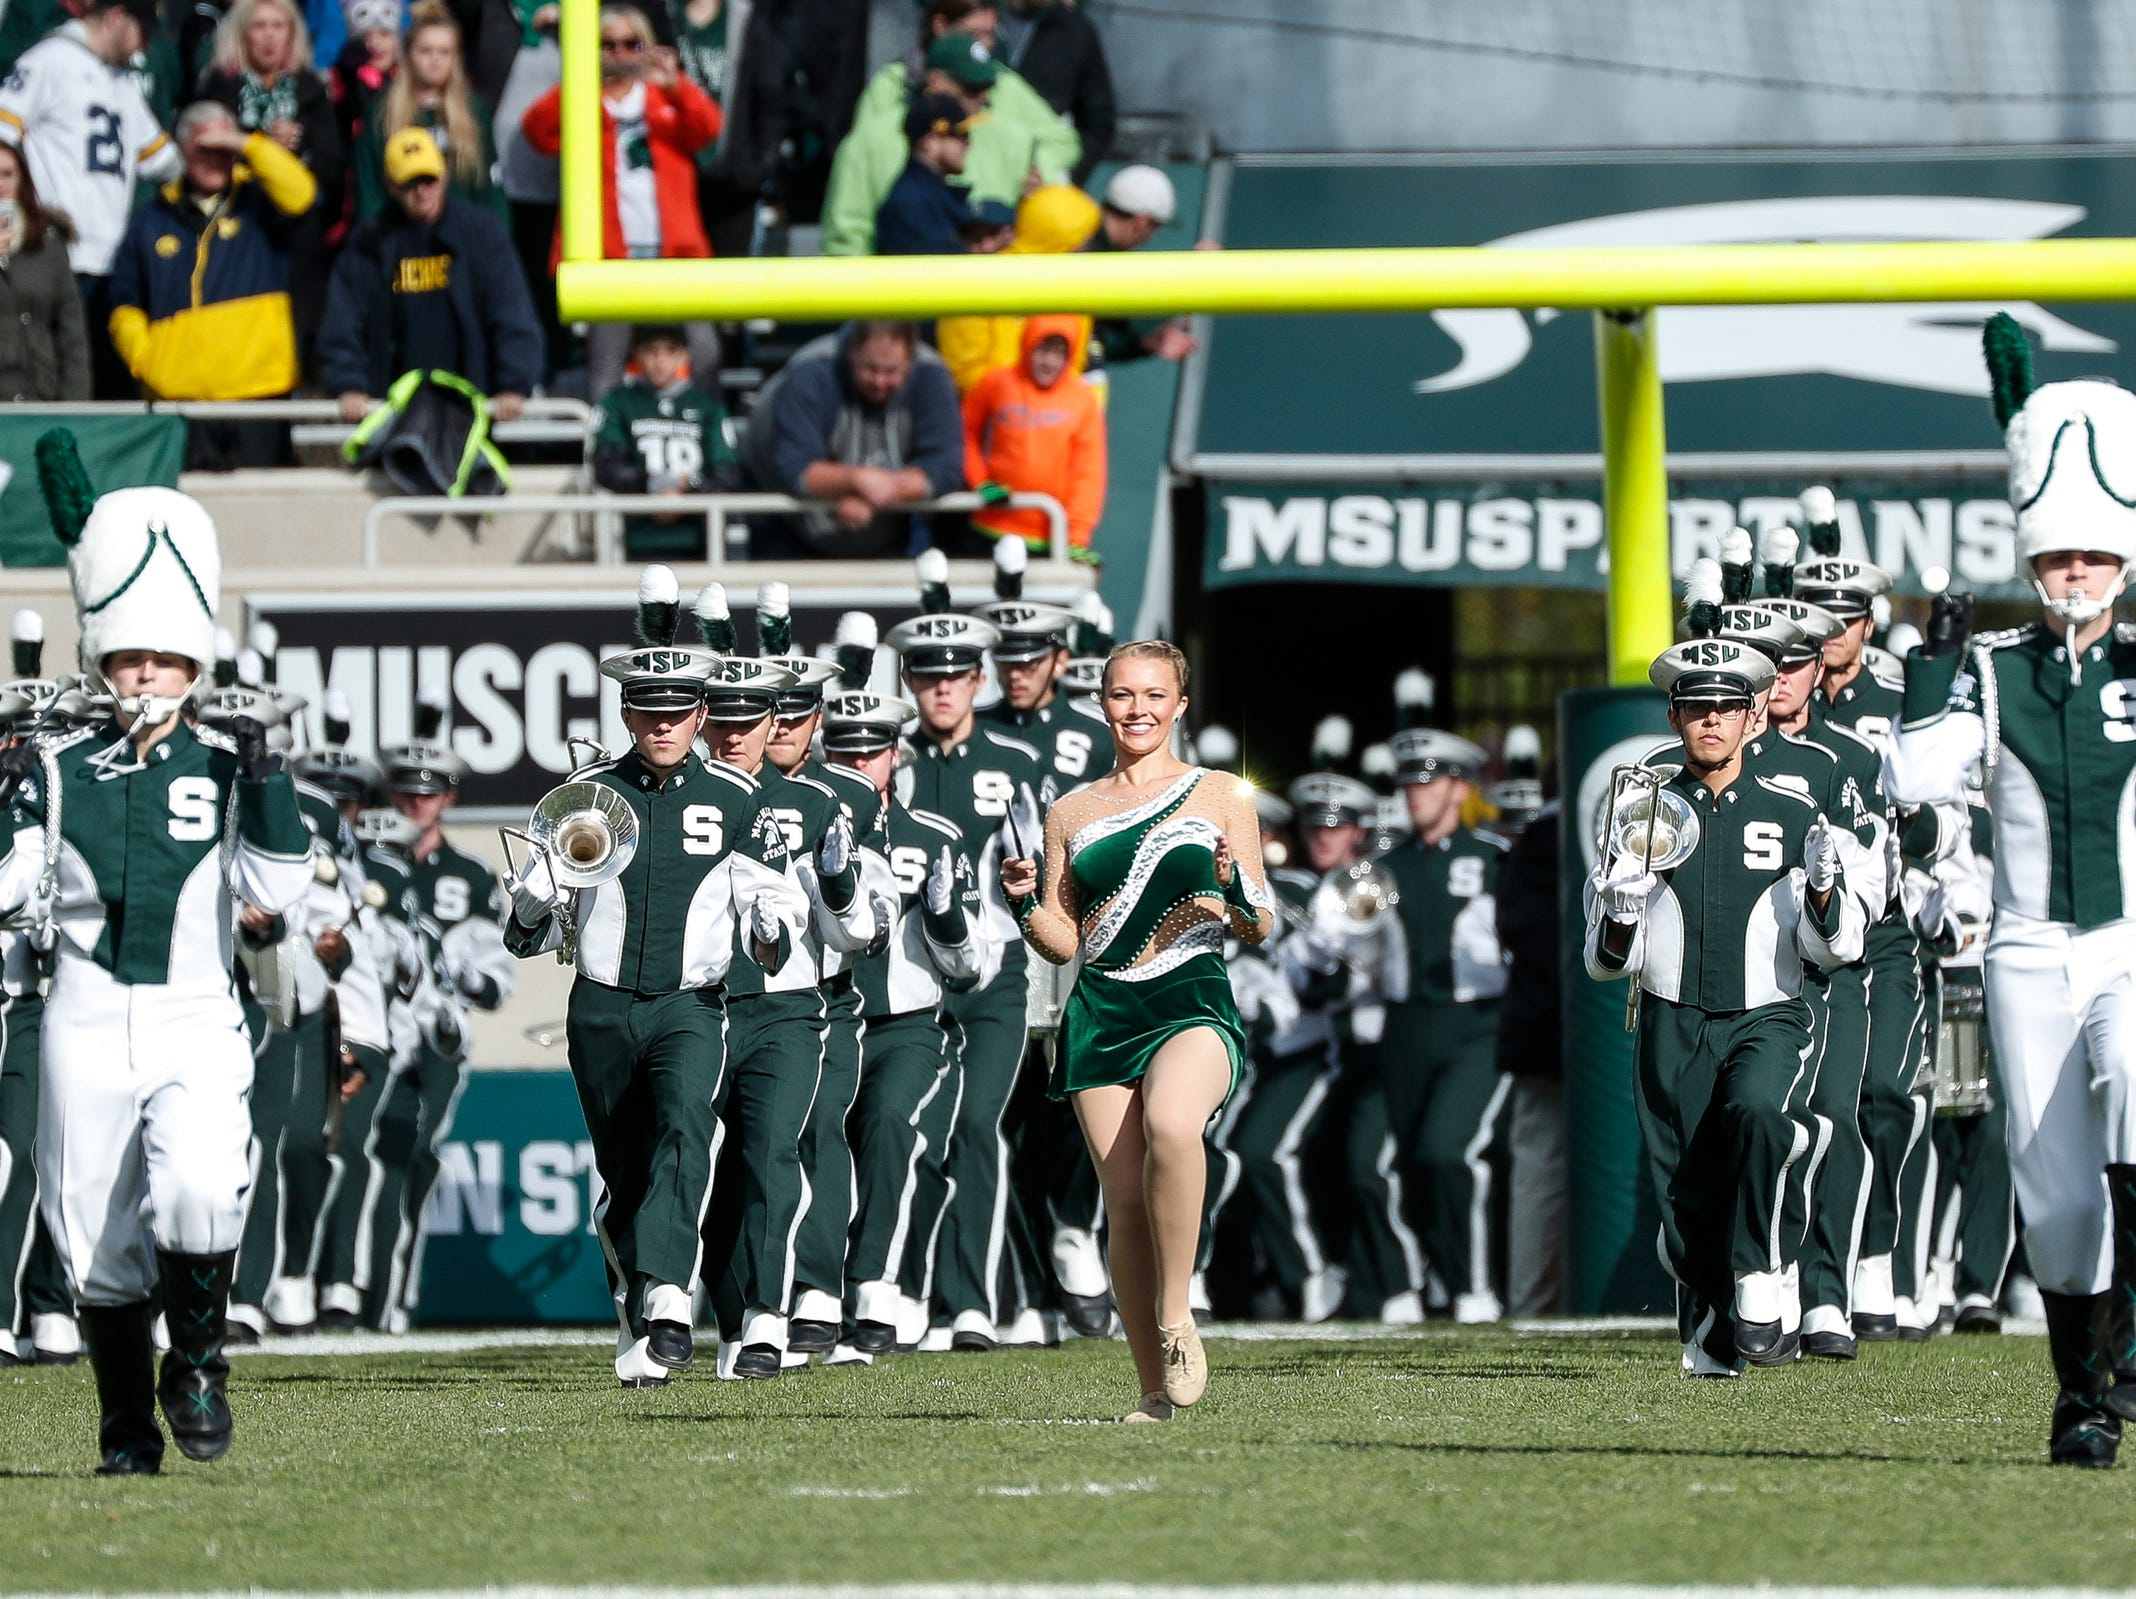 The Michigan State Marching Band enters the field before the Michigan game at Spartan Stadium on Saturday, Oct. 20, 2018.